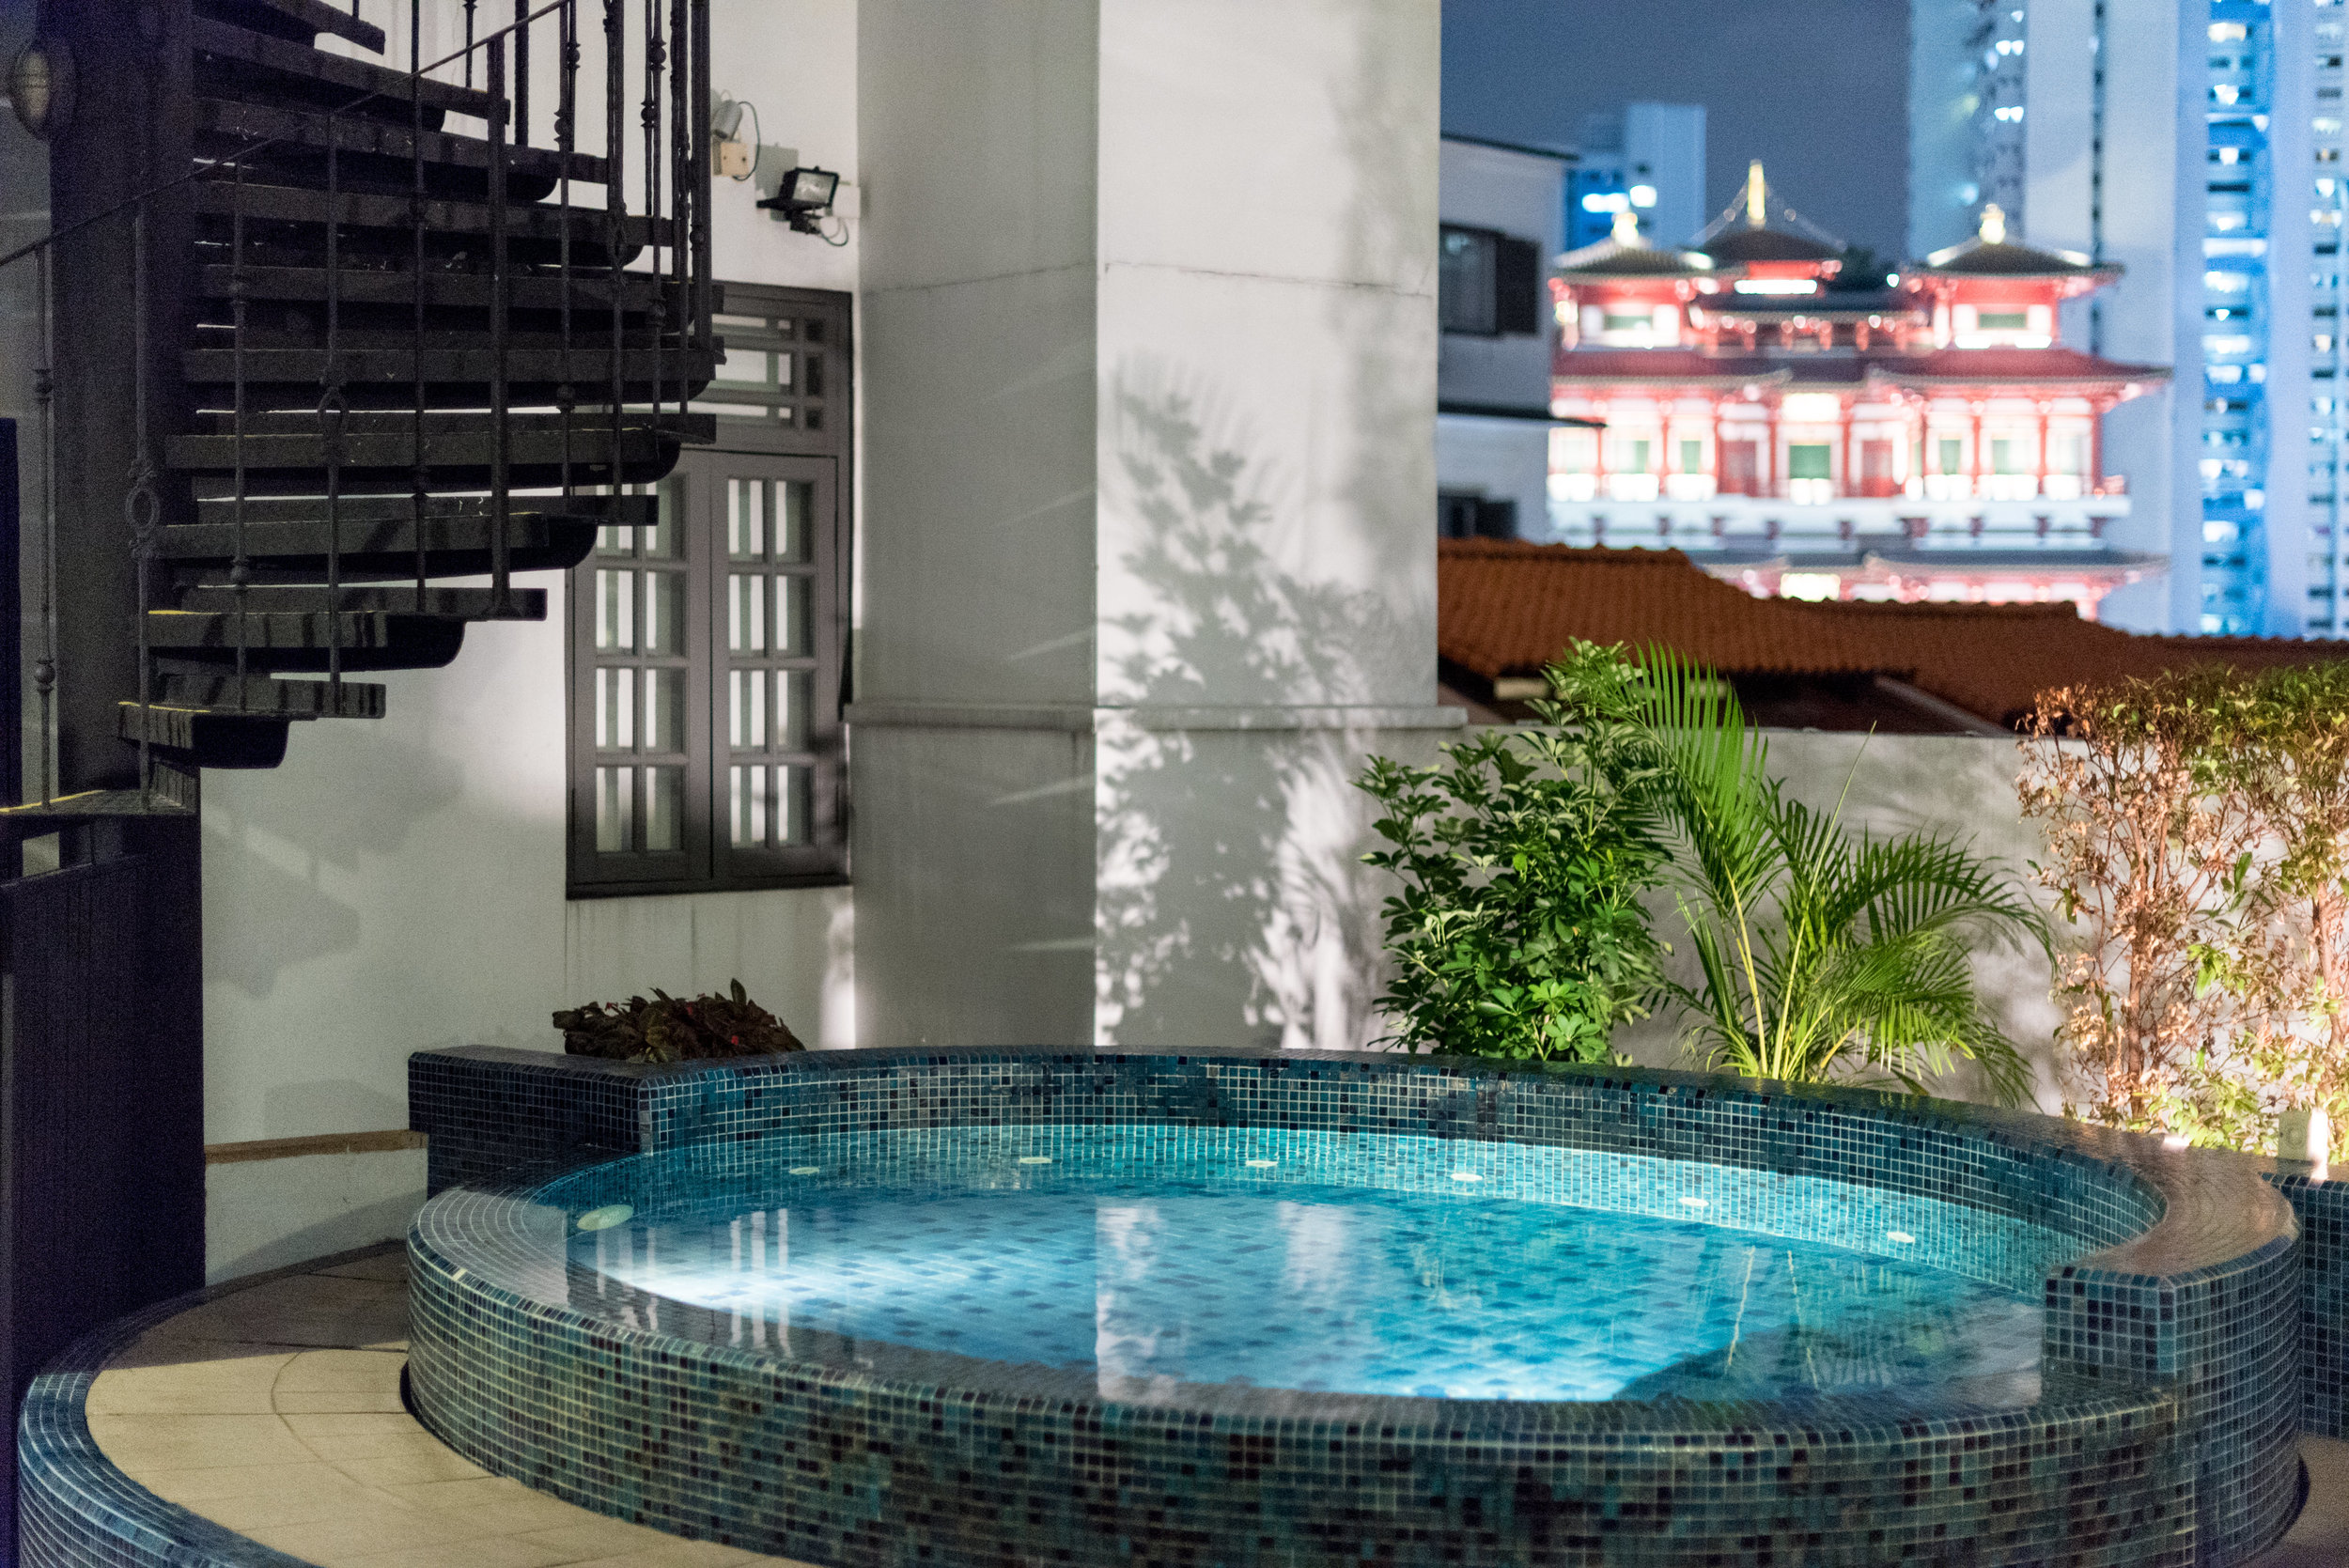 Outdoor Jacuzzi   The Scarlet Singapore